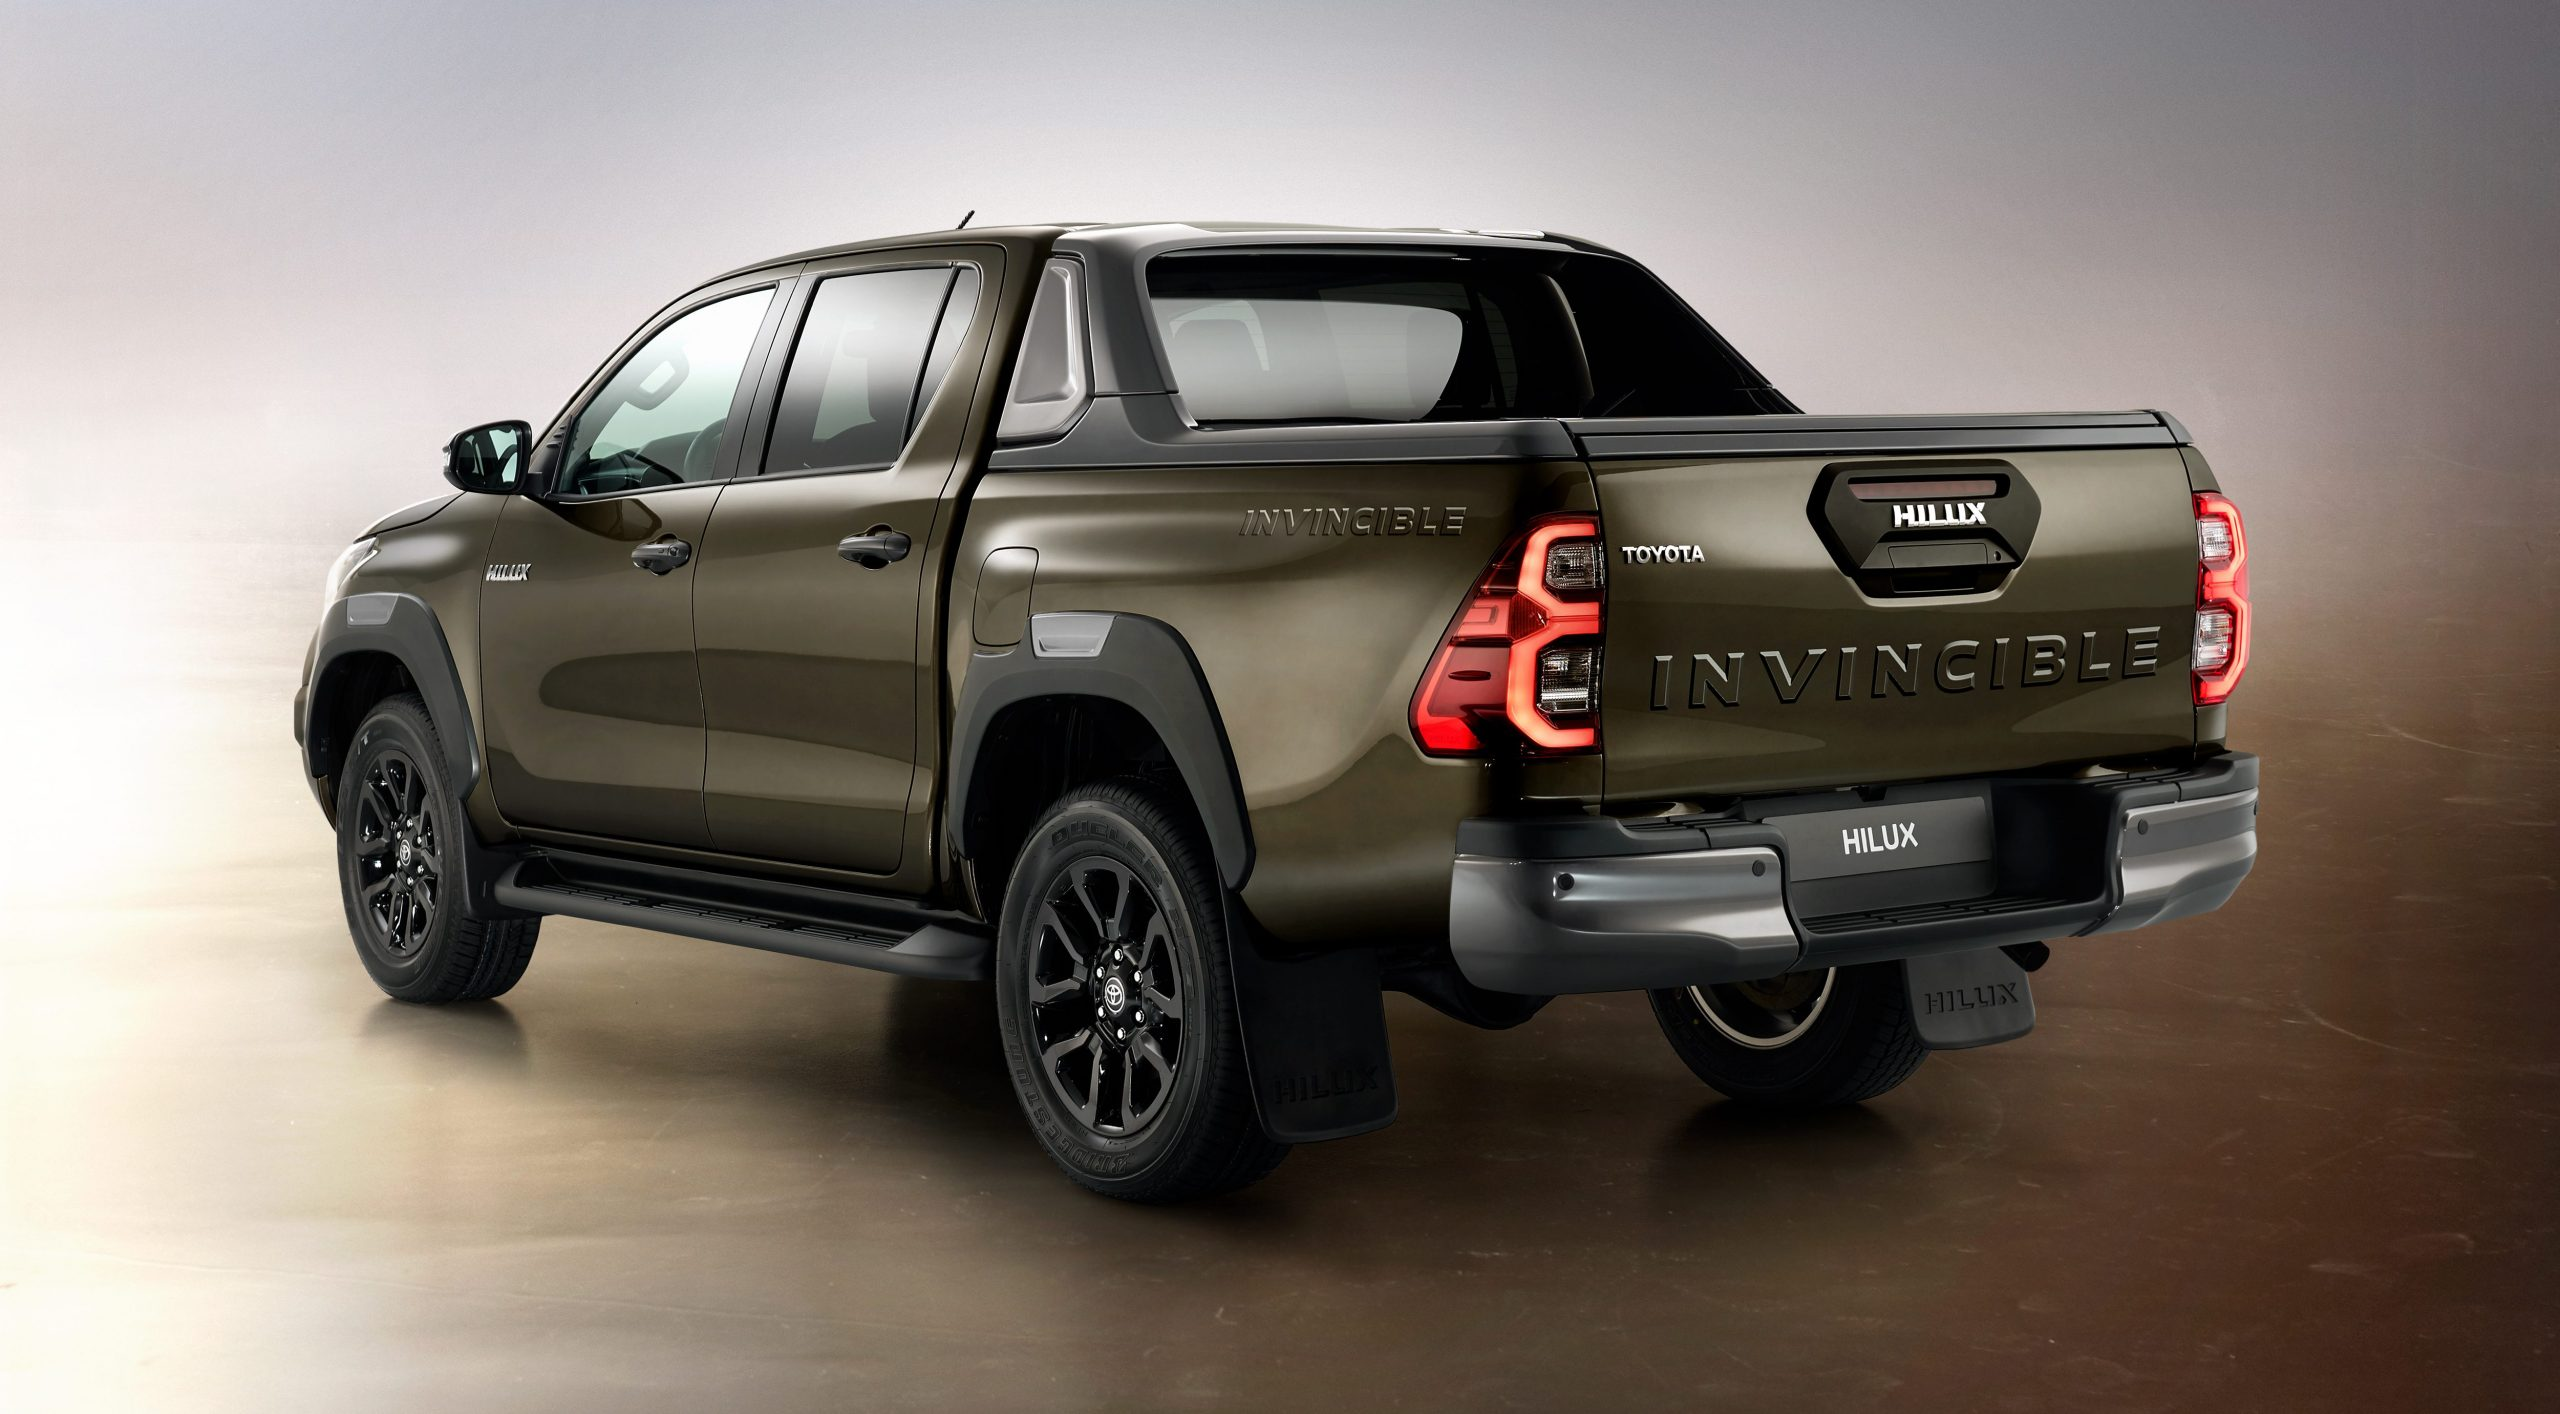 2021 Toyota Hilux Invincible in Titan Bronze - rear three-quarter